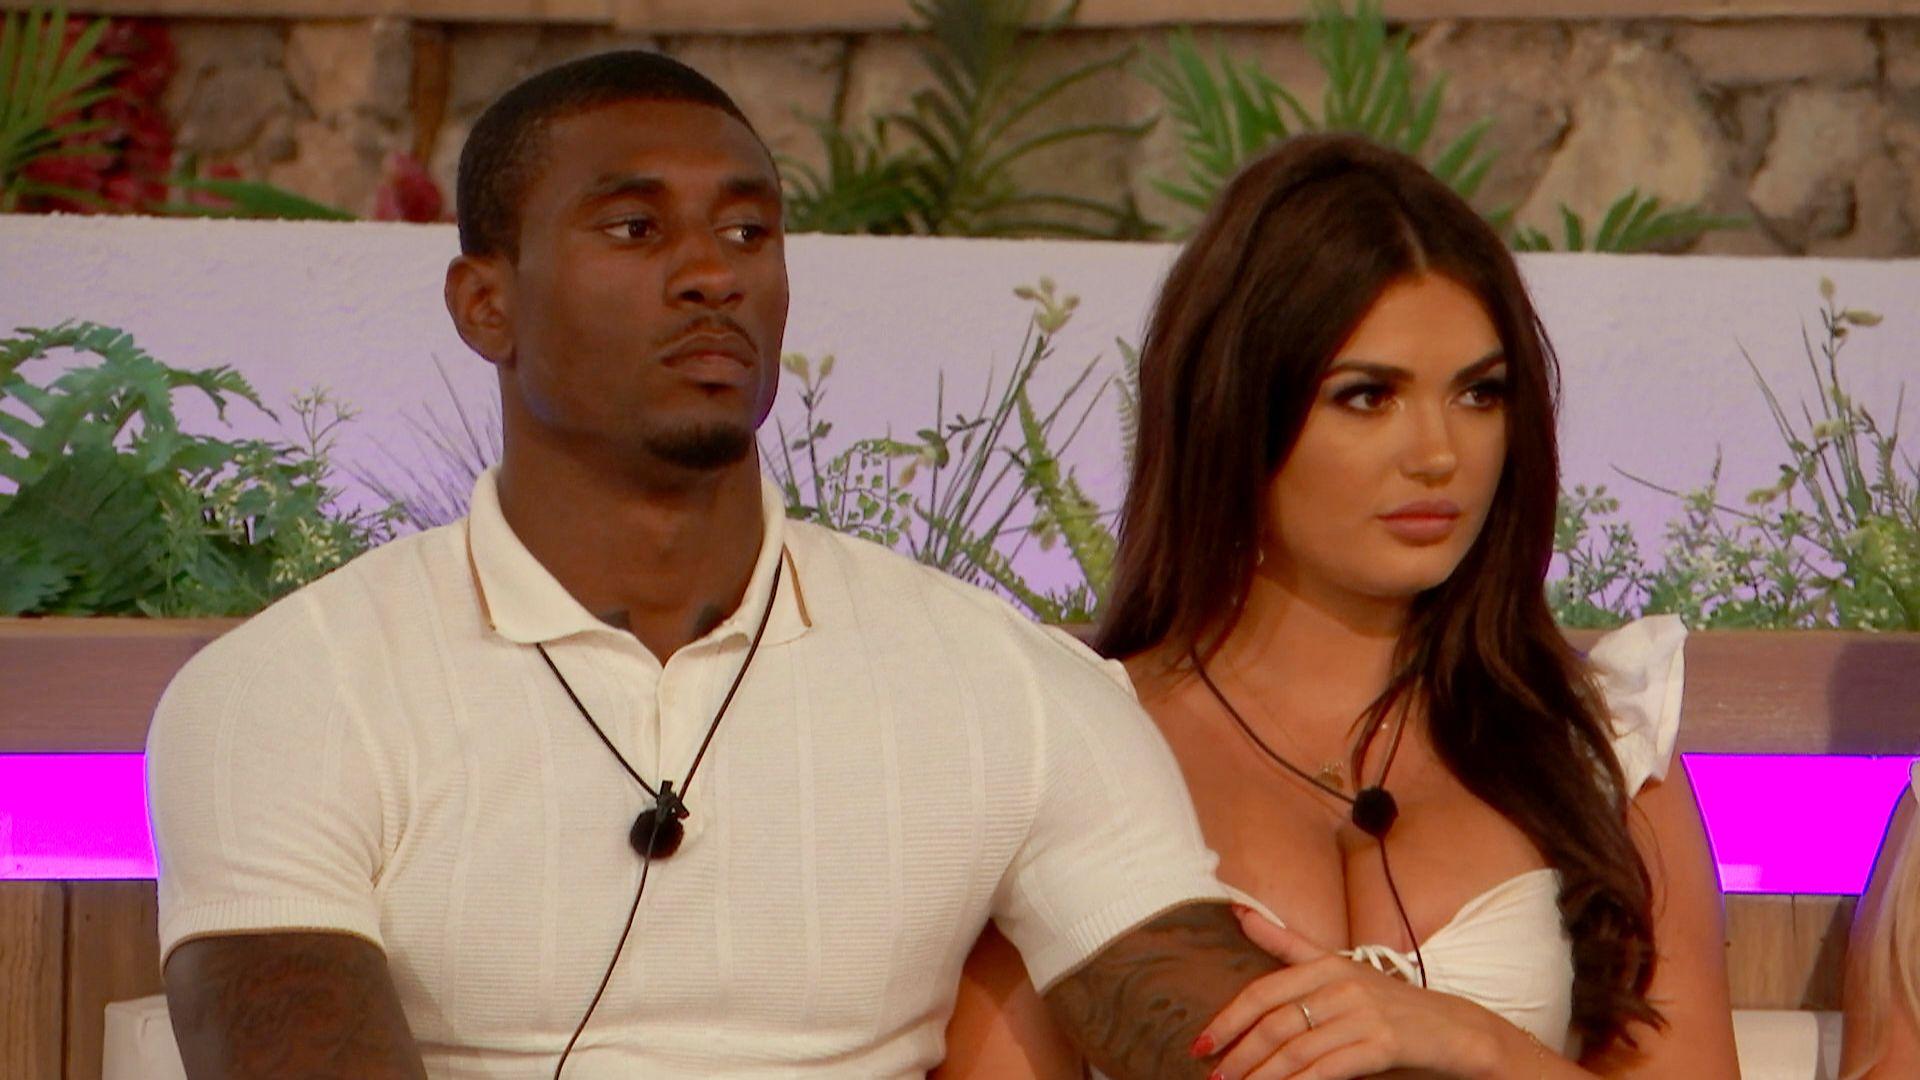 Love Island's India Reynolds responds to claims she cheated on Ovie Soko